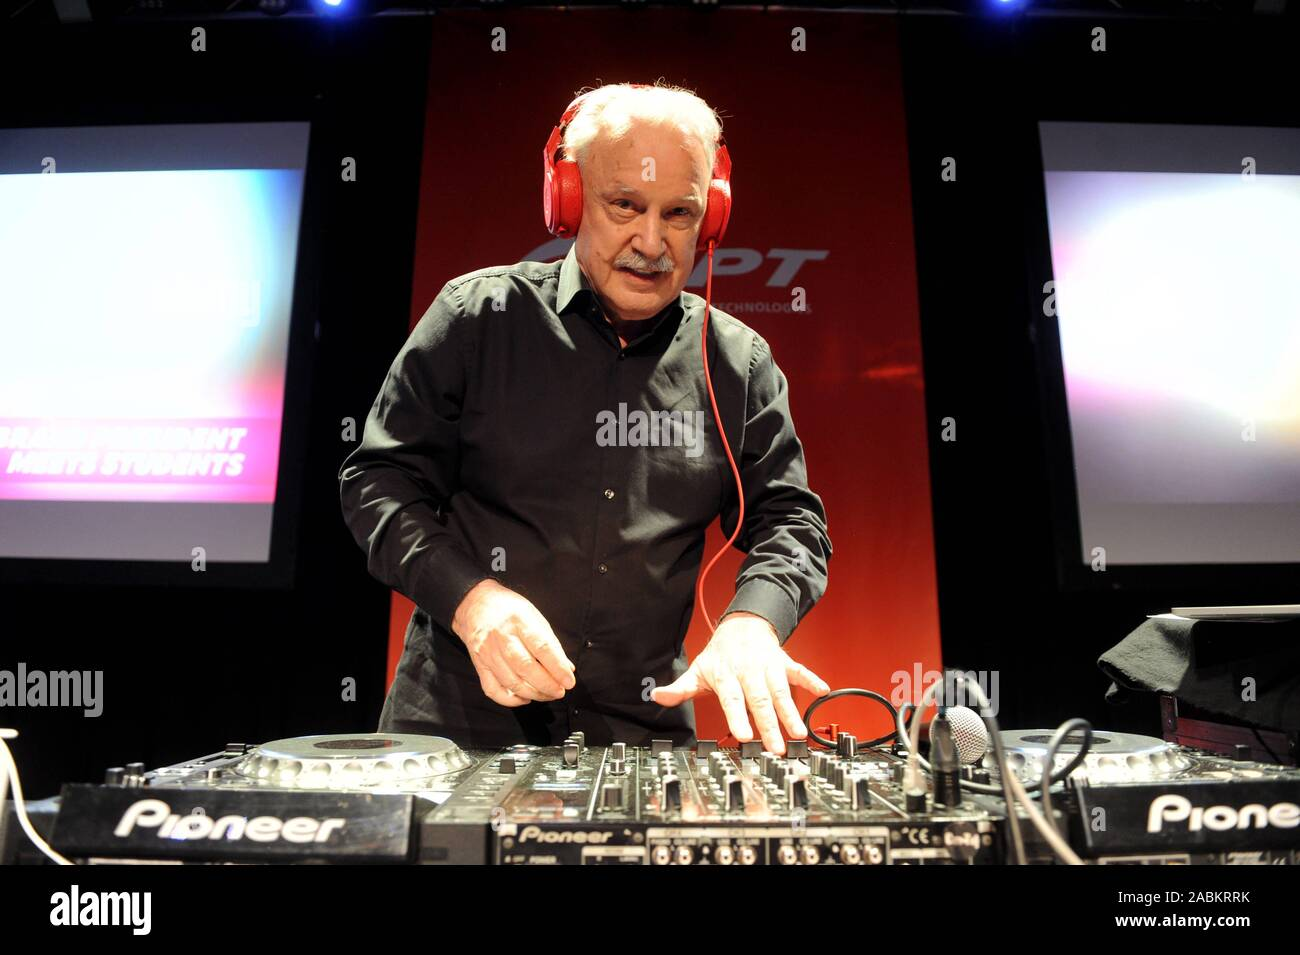 The Italian music producer and composer Giorgio Moroder plays at the FPT Industrial Event in the Technikum München. [automated translation] Stock Photo